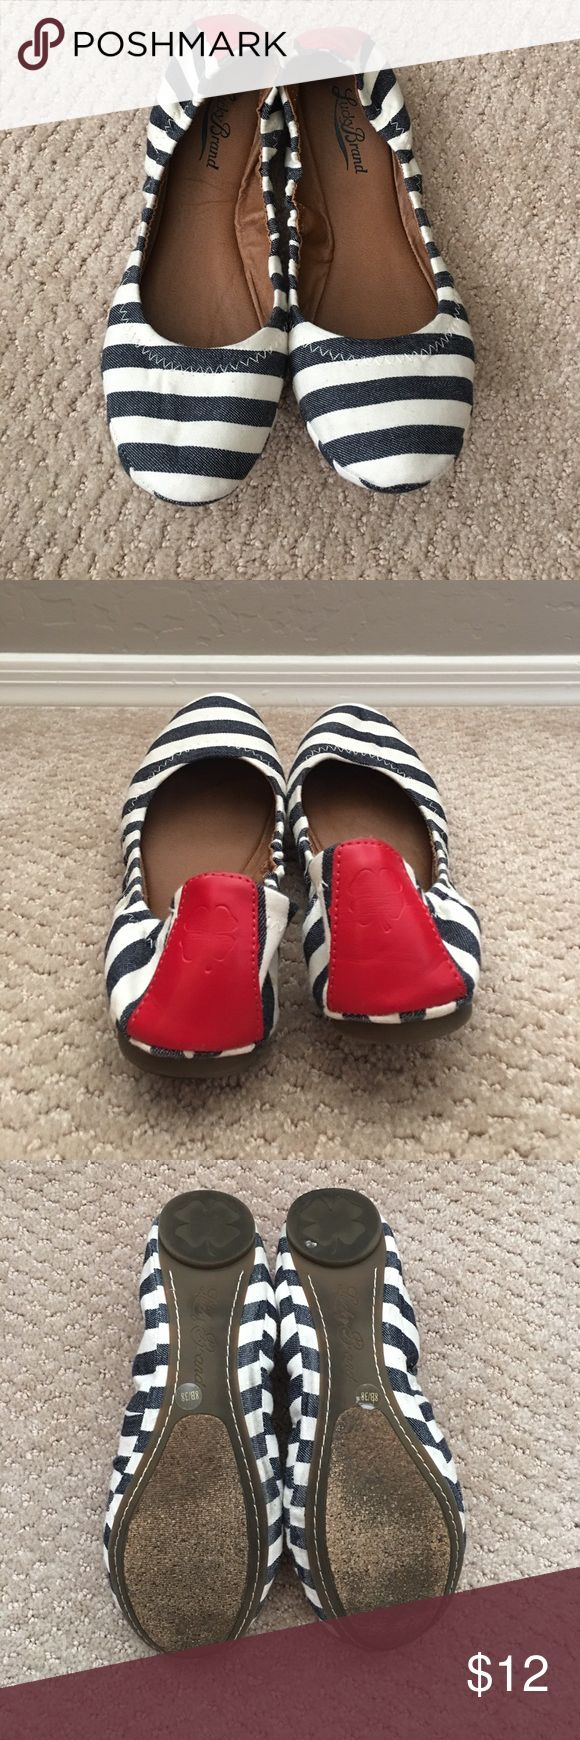 Lucky Brand 🍀 Striped Ballet Flats These navy blue striped ballet flats have only been worn a few times. They have a cute accent of red leather on the heel. Lucky Brand Shoes Flats & Loafers